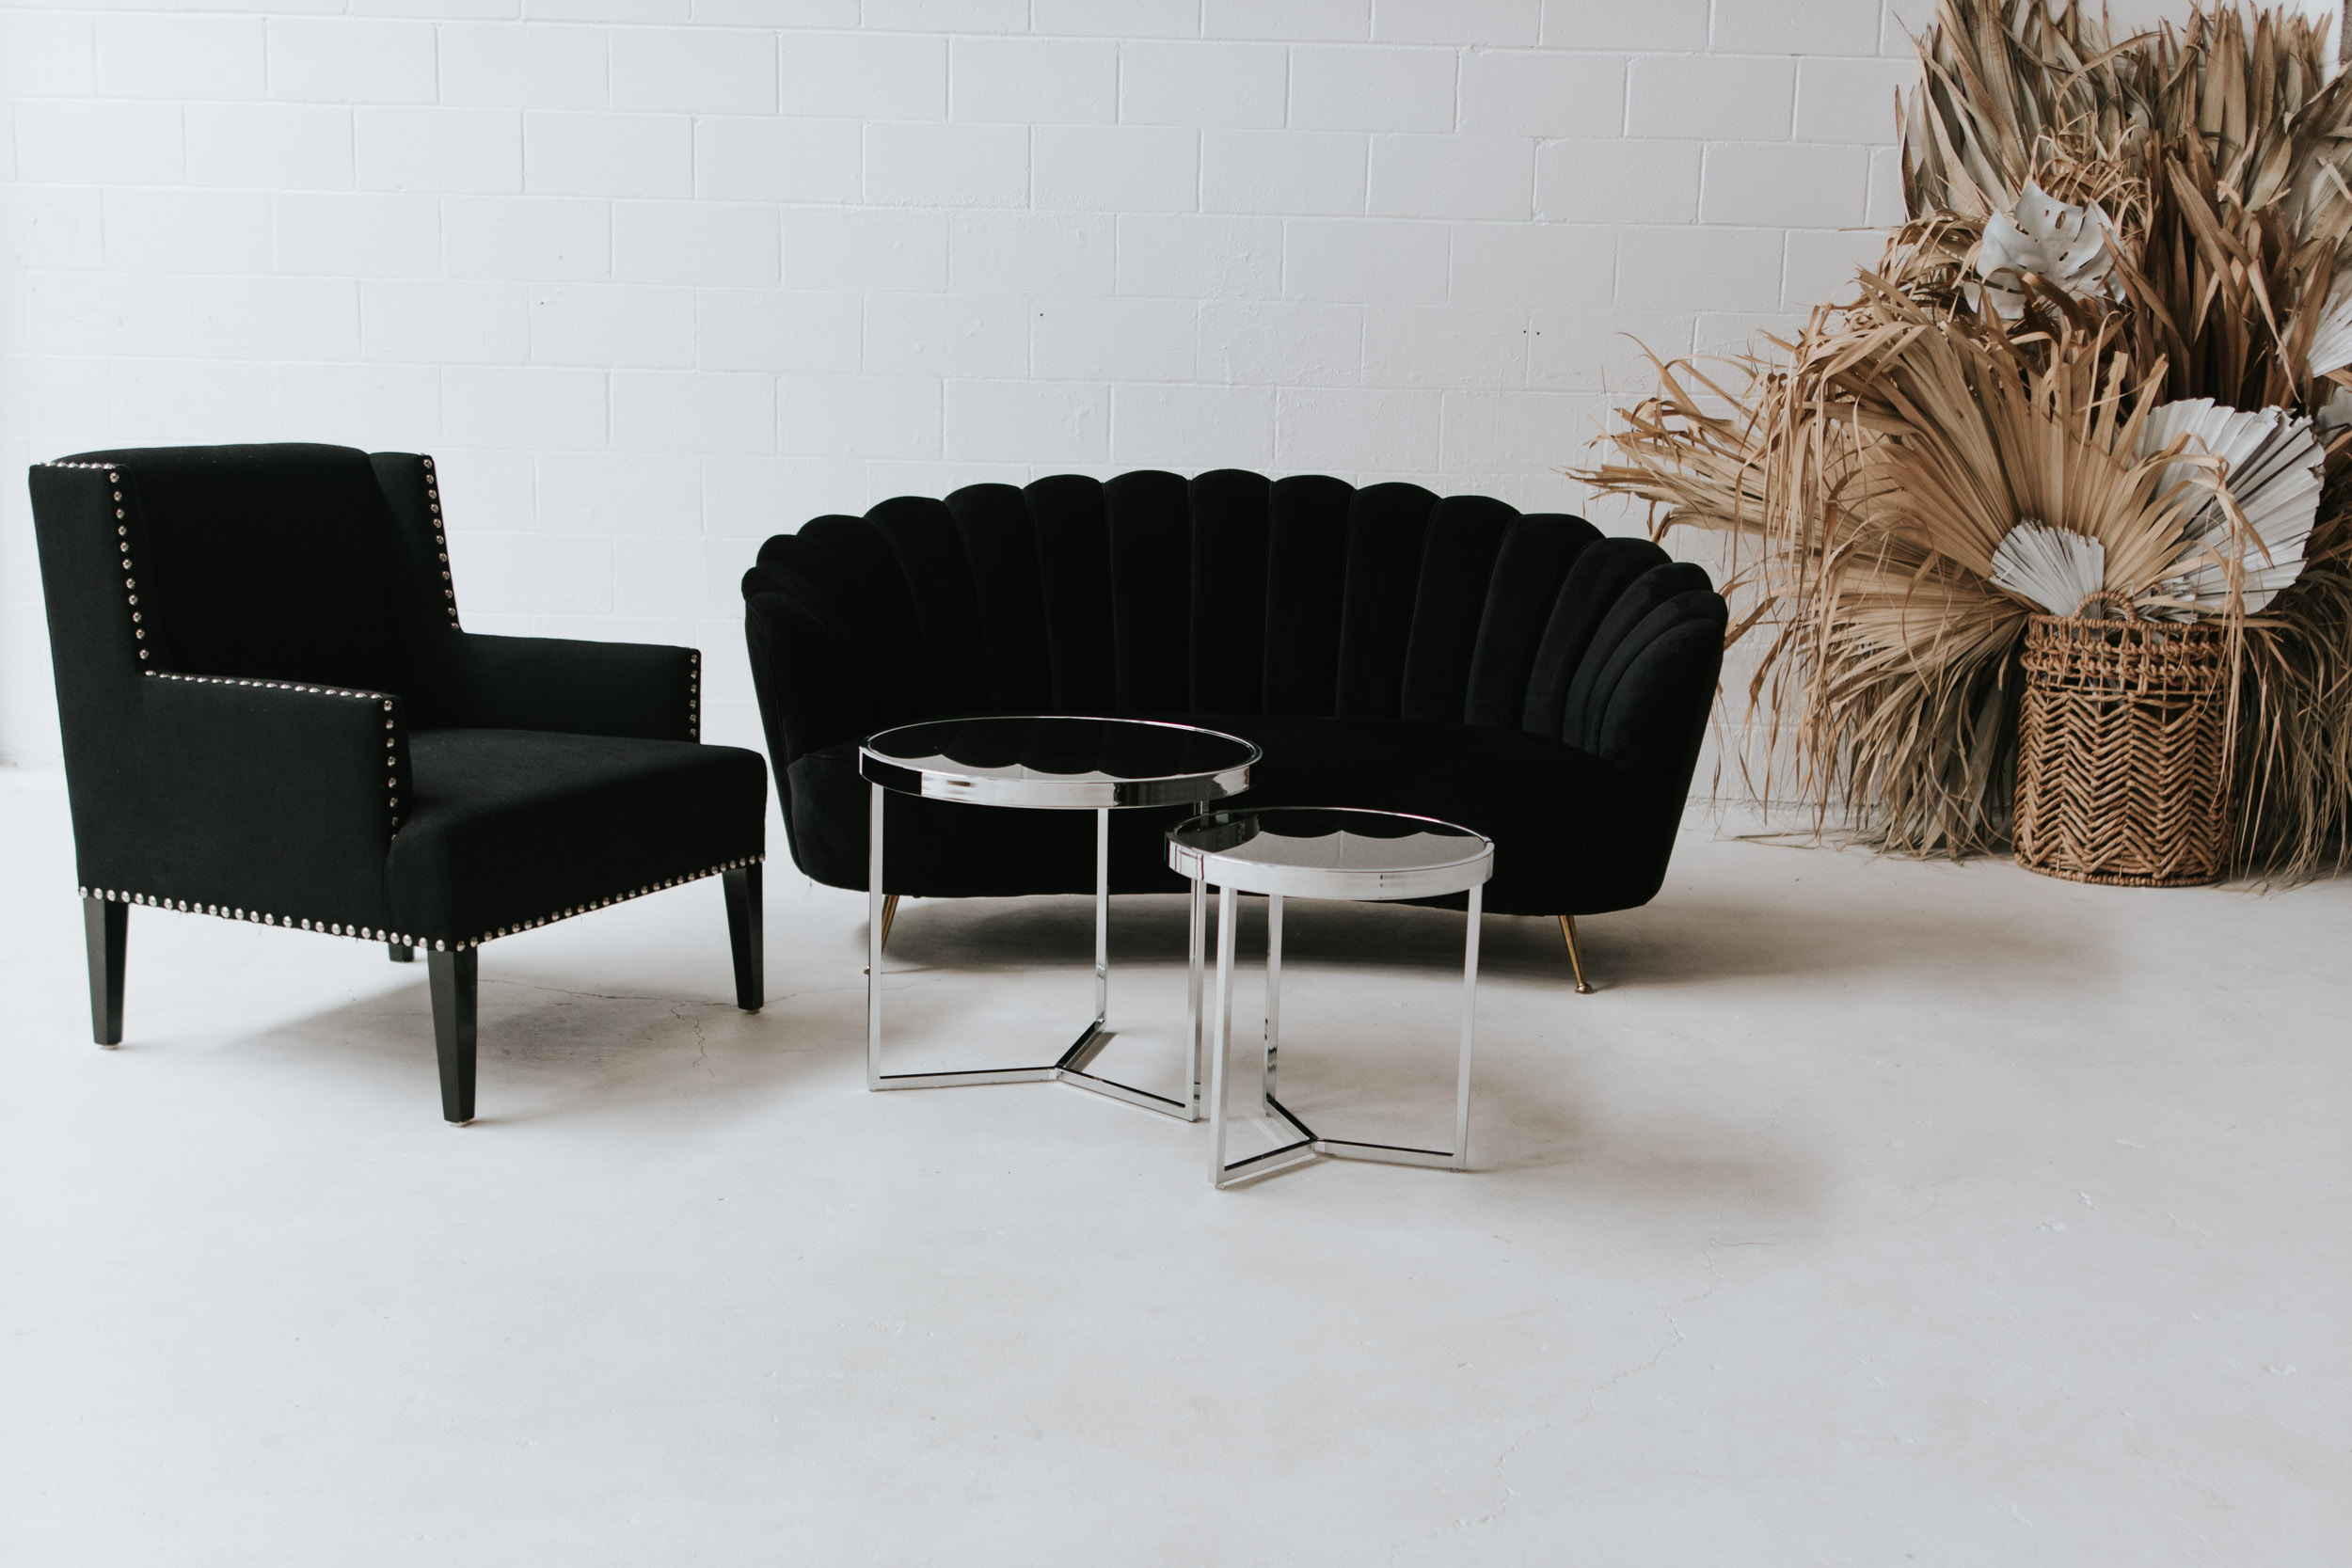 AVIDEAS INVENTORY SEATING and SETTINGS-9.jpg